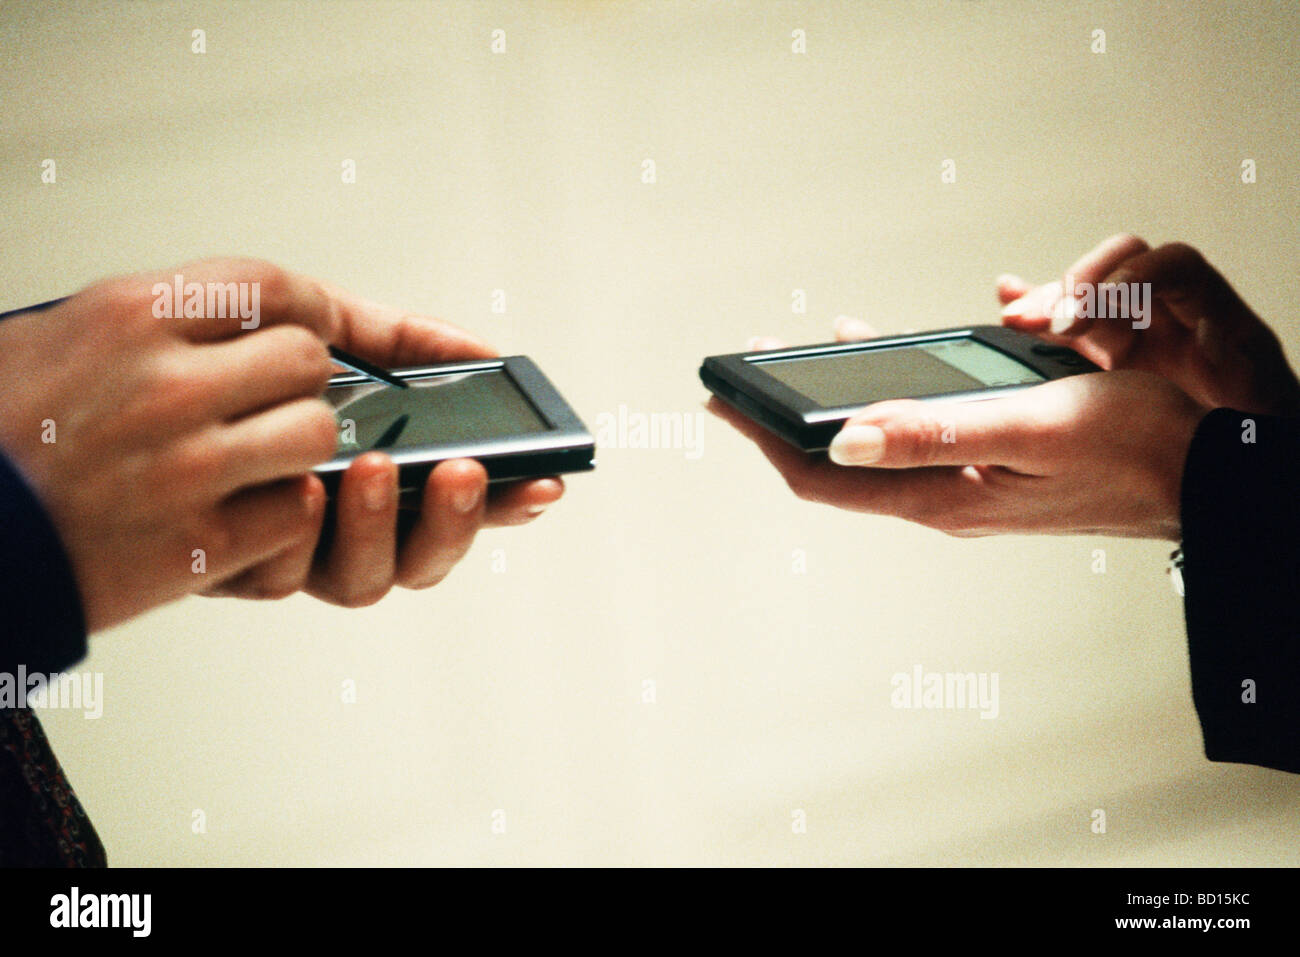 Two people exchanging information using personal digital assistants - Stock Image